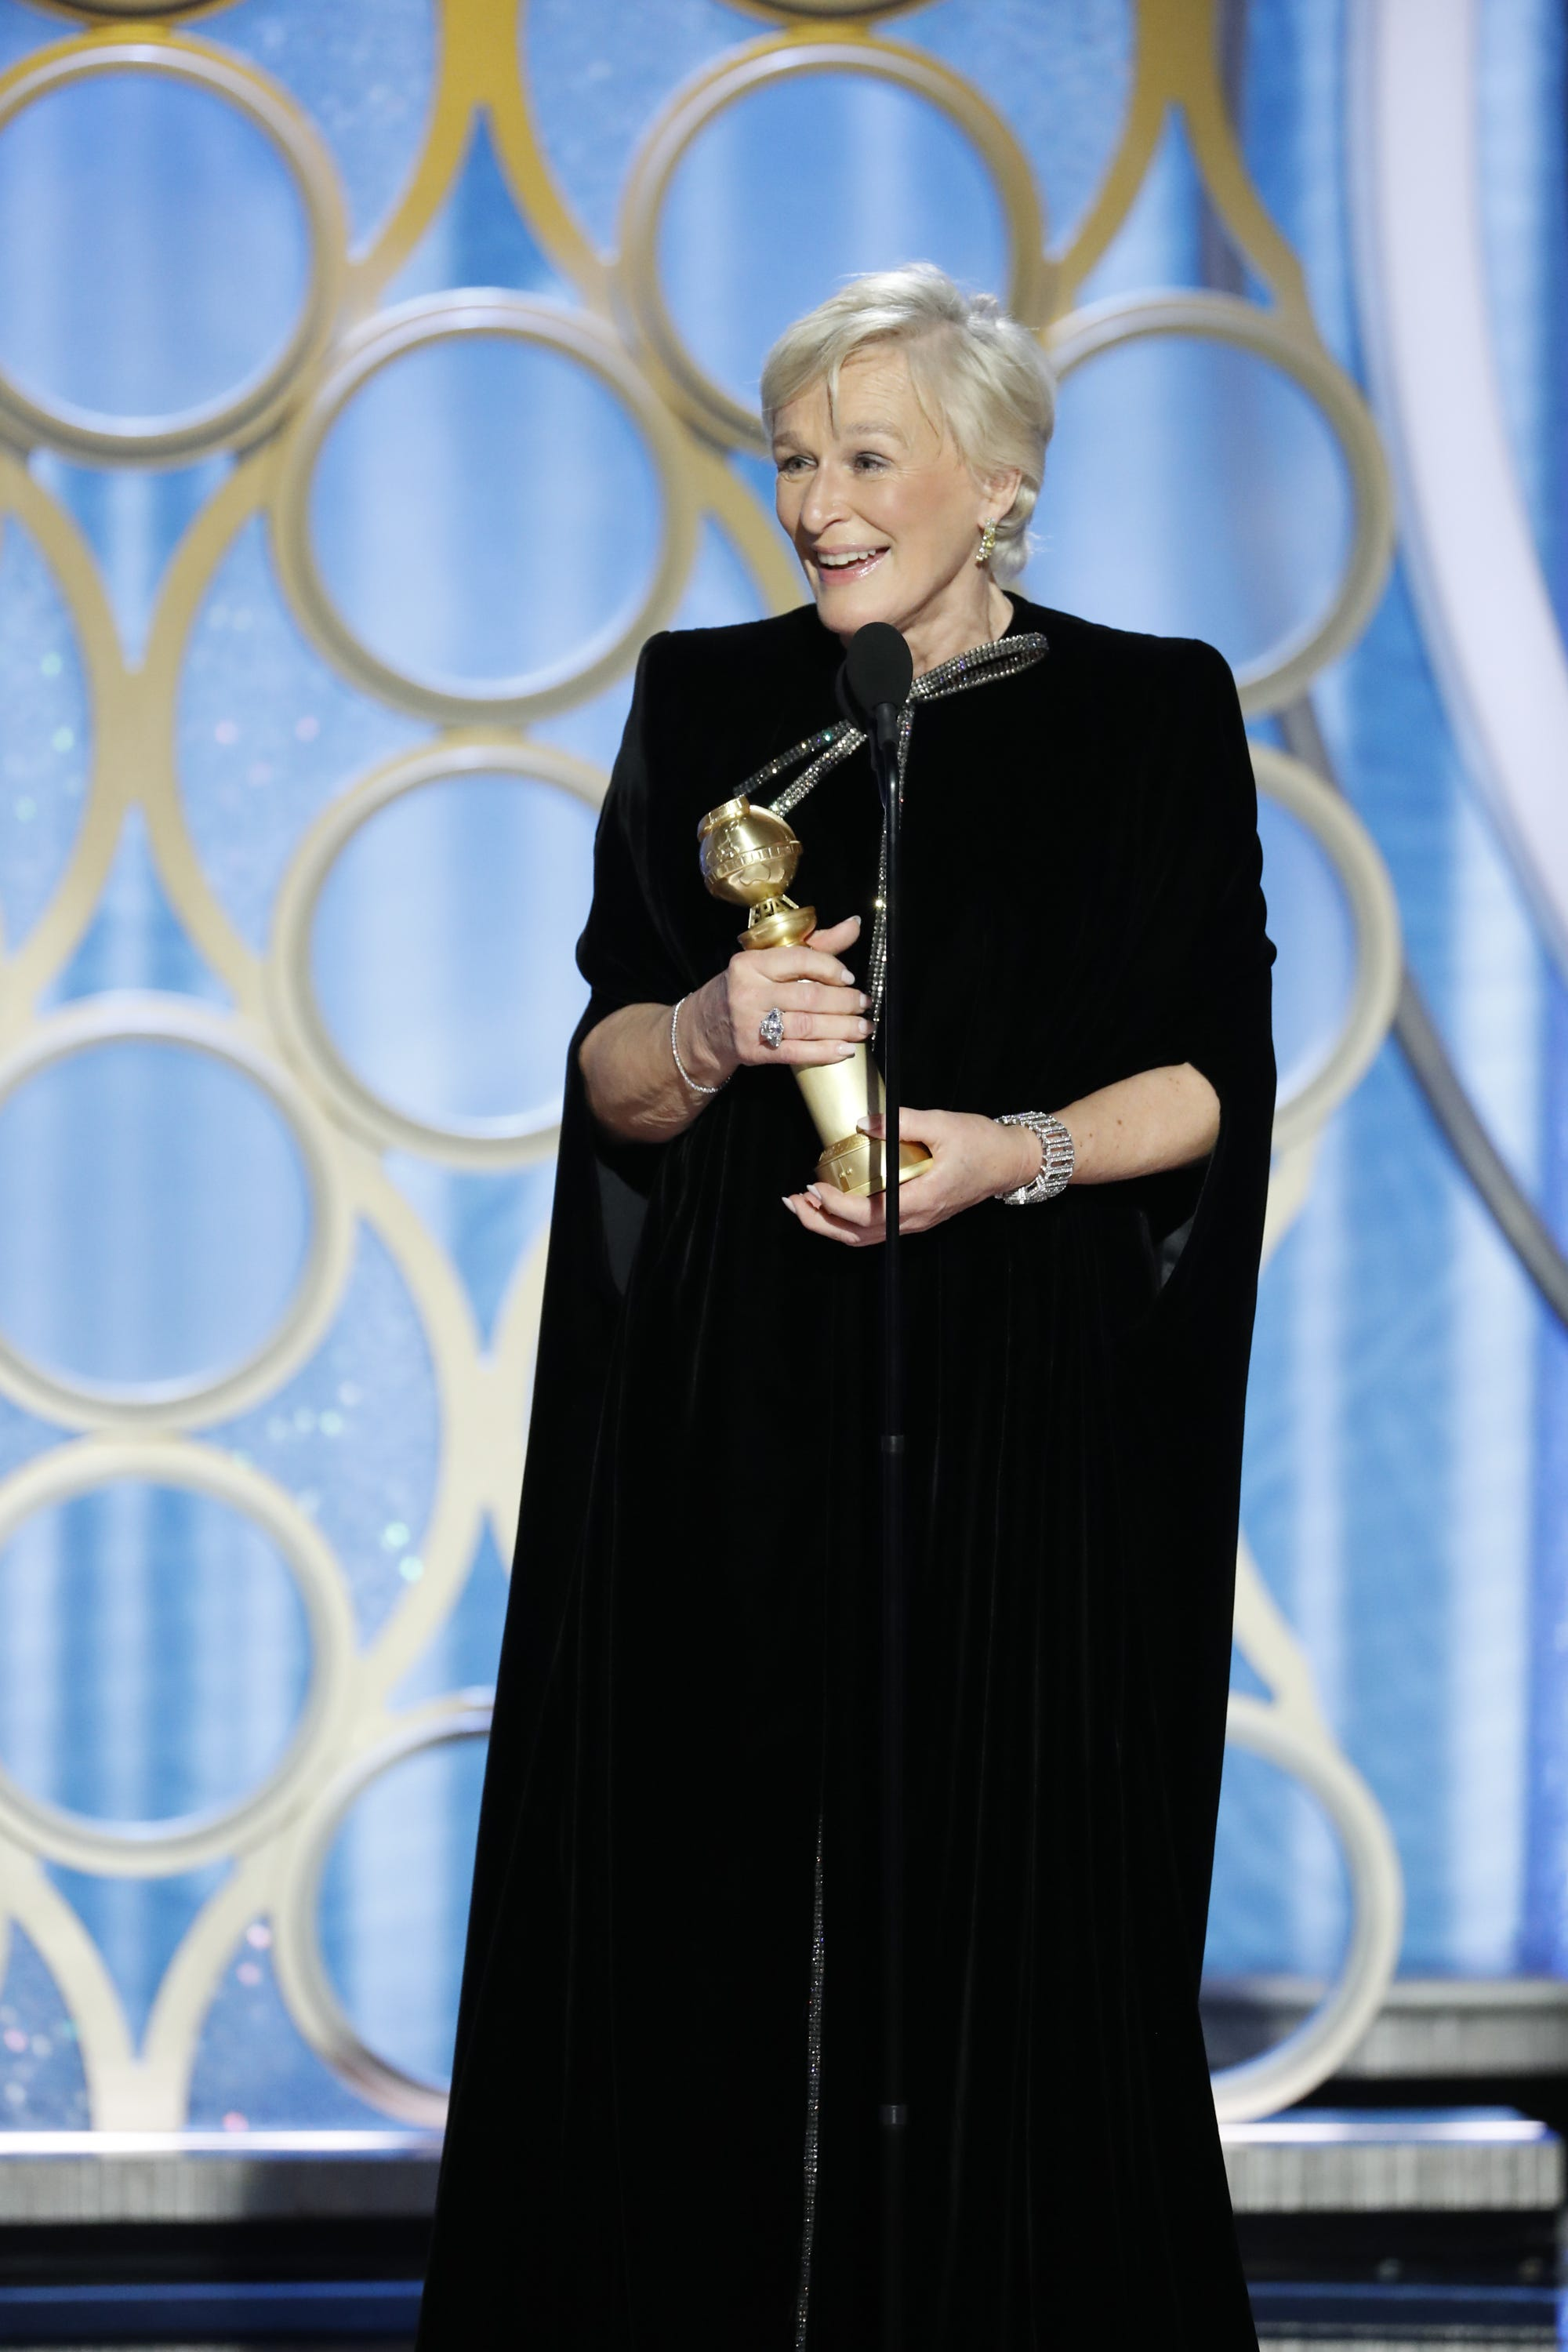 7 must-know moments from Sunday's Golden Globe Awards show